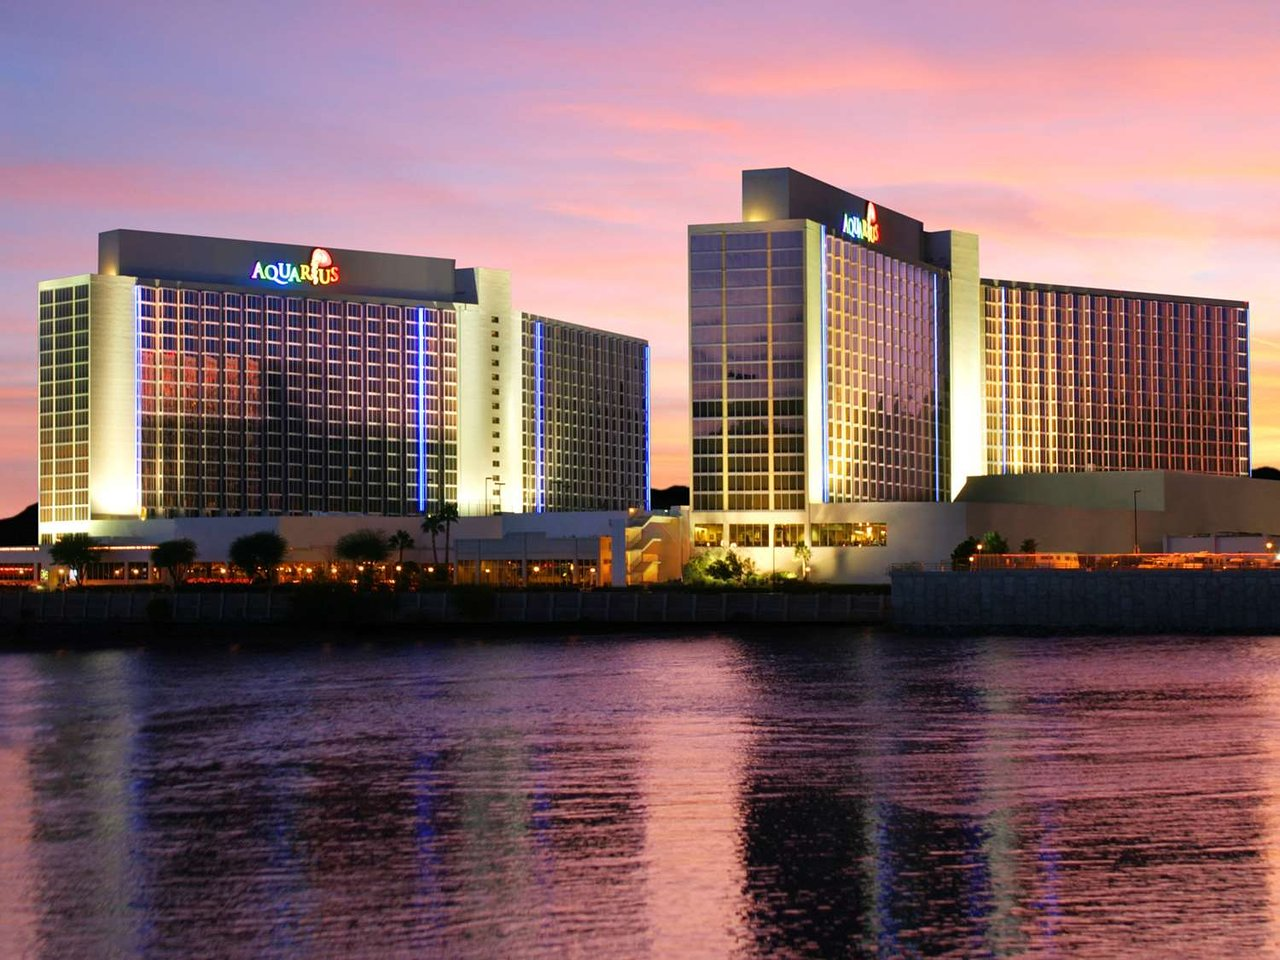 Laughlin nevada casino and hotels r6 vegas 2 save game